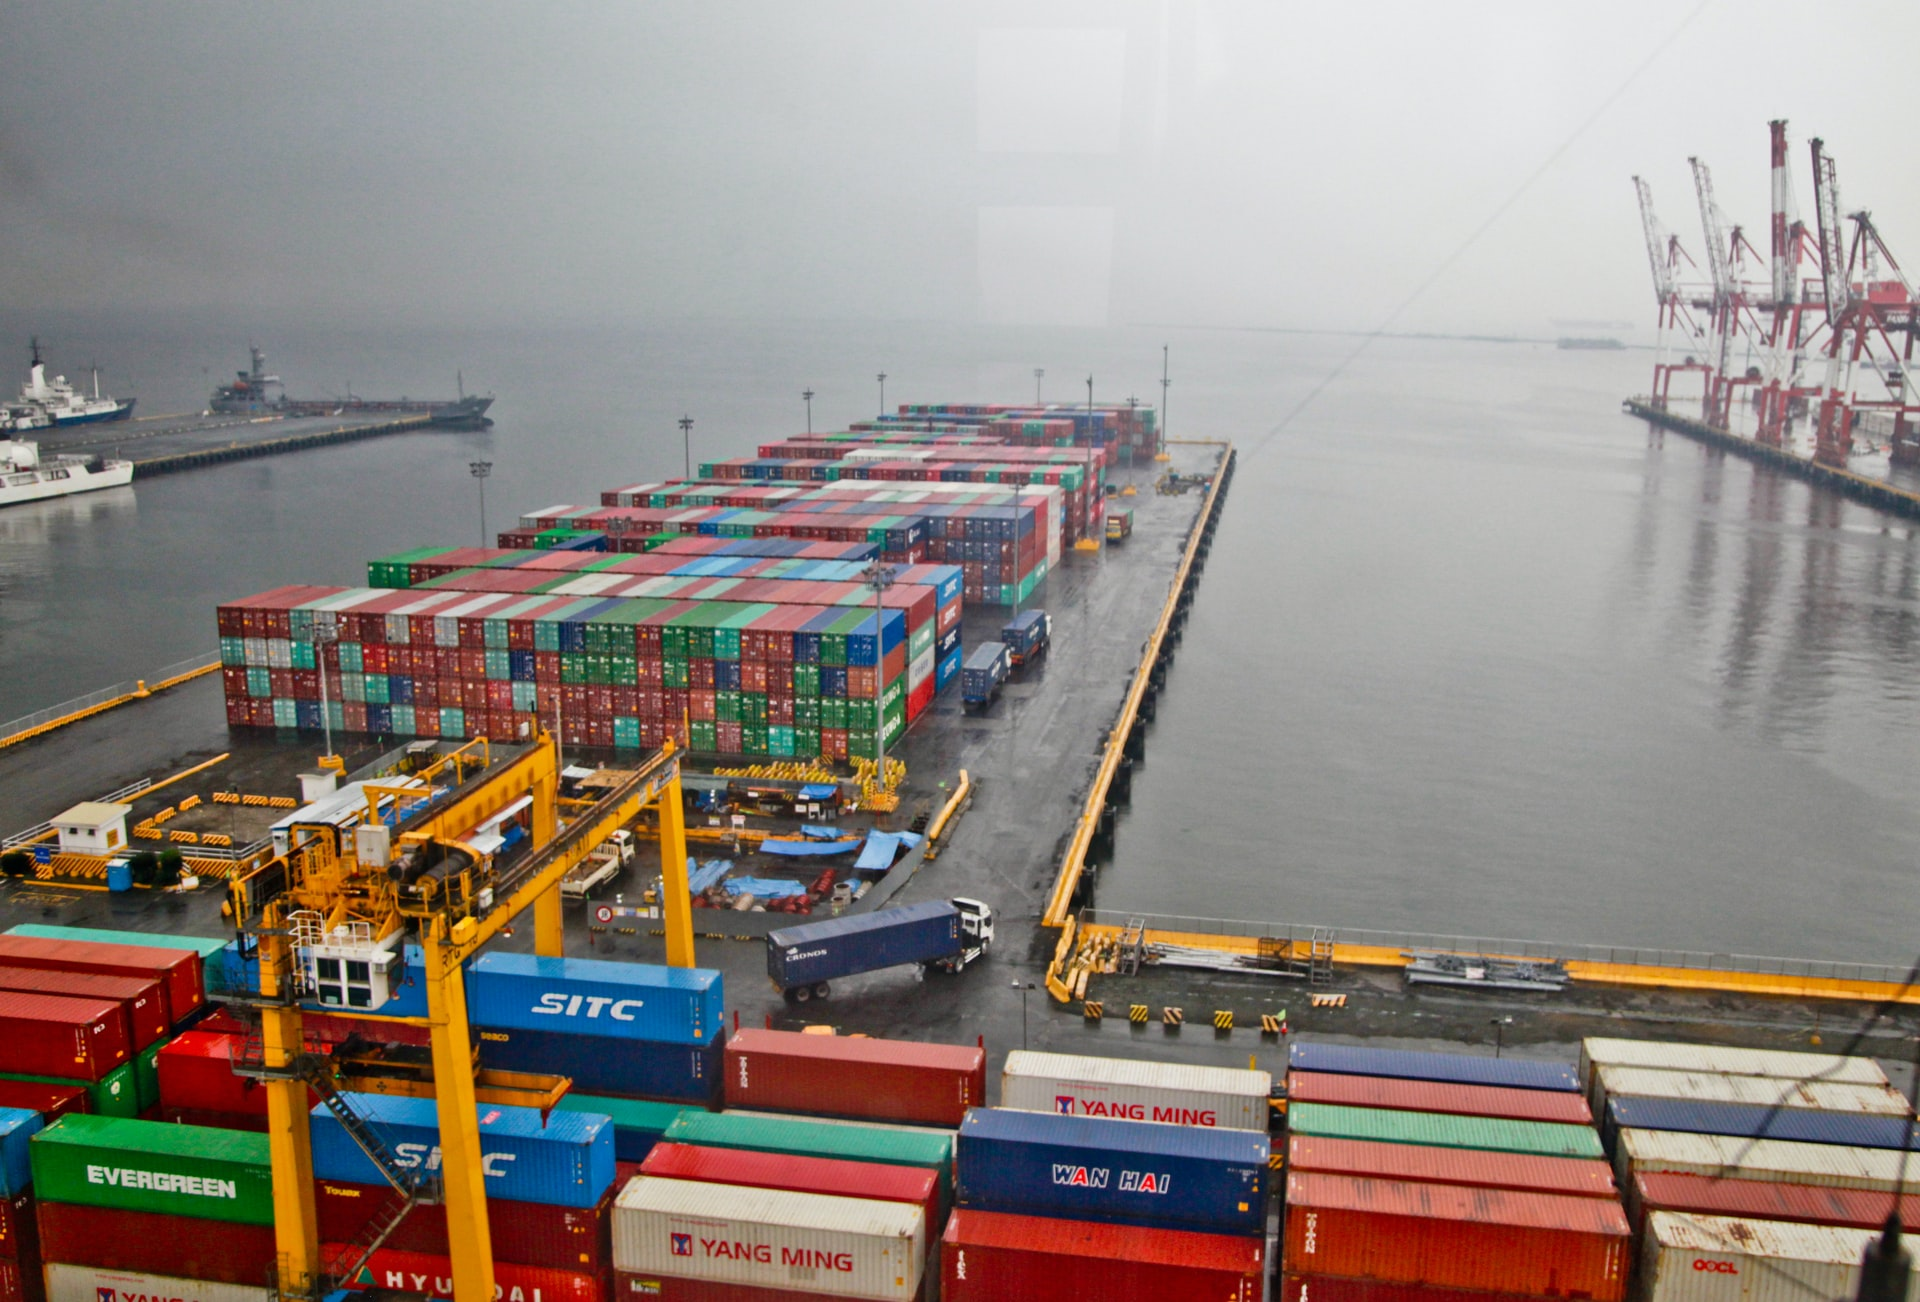 Most of the twelve largest container carriers have not publishedtheir Sustainability Reports for the year 2020 yet. Image: Gliese Foundation